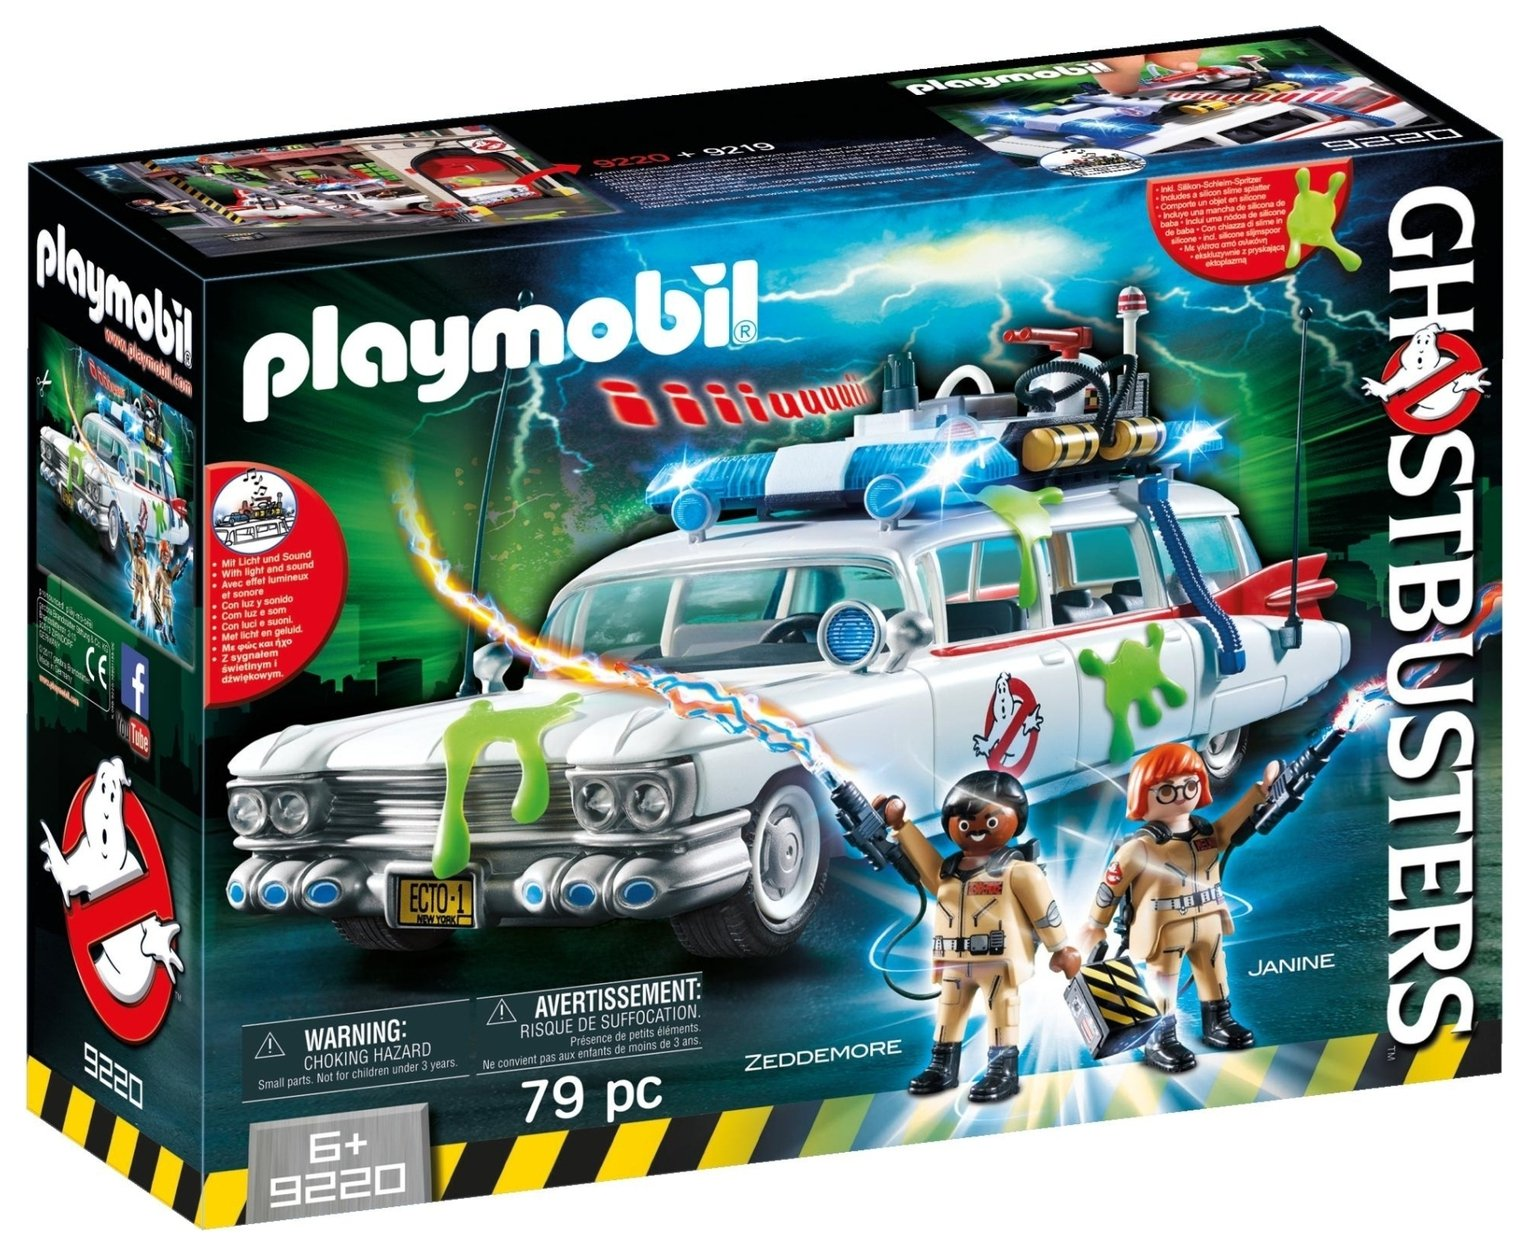 Playmobil 9220 Ghostbusters� Ecto 1 With Lights And Sound